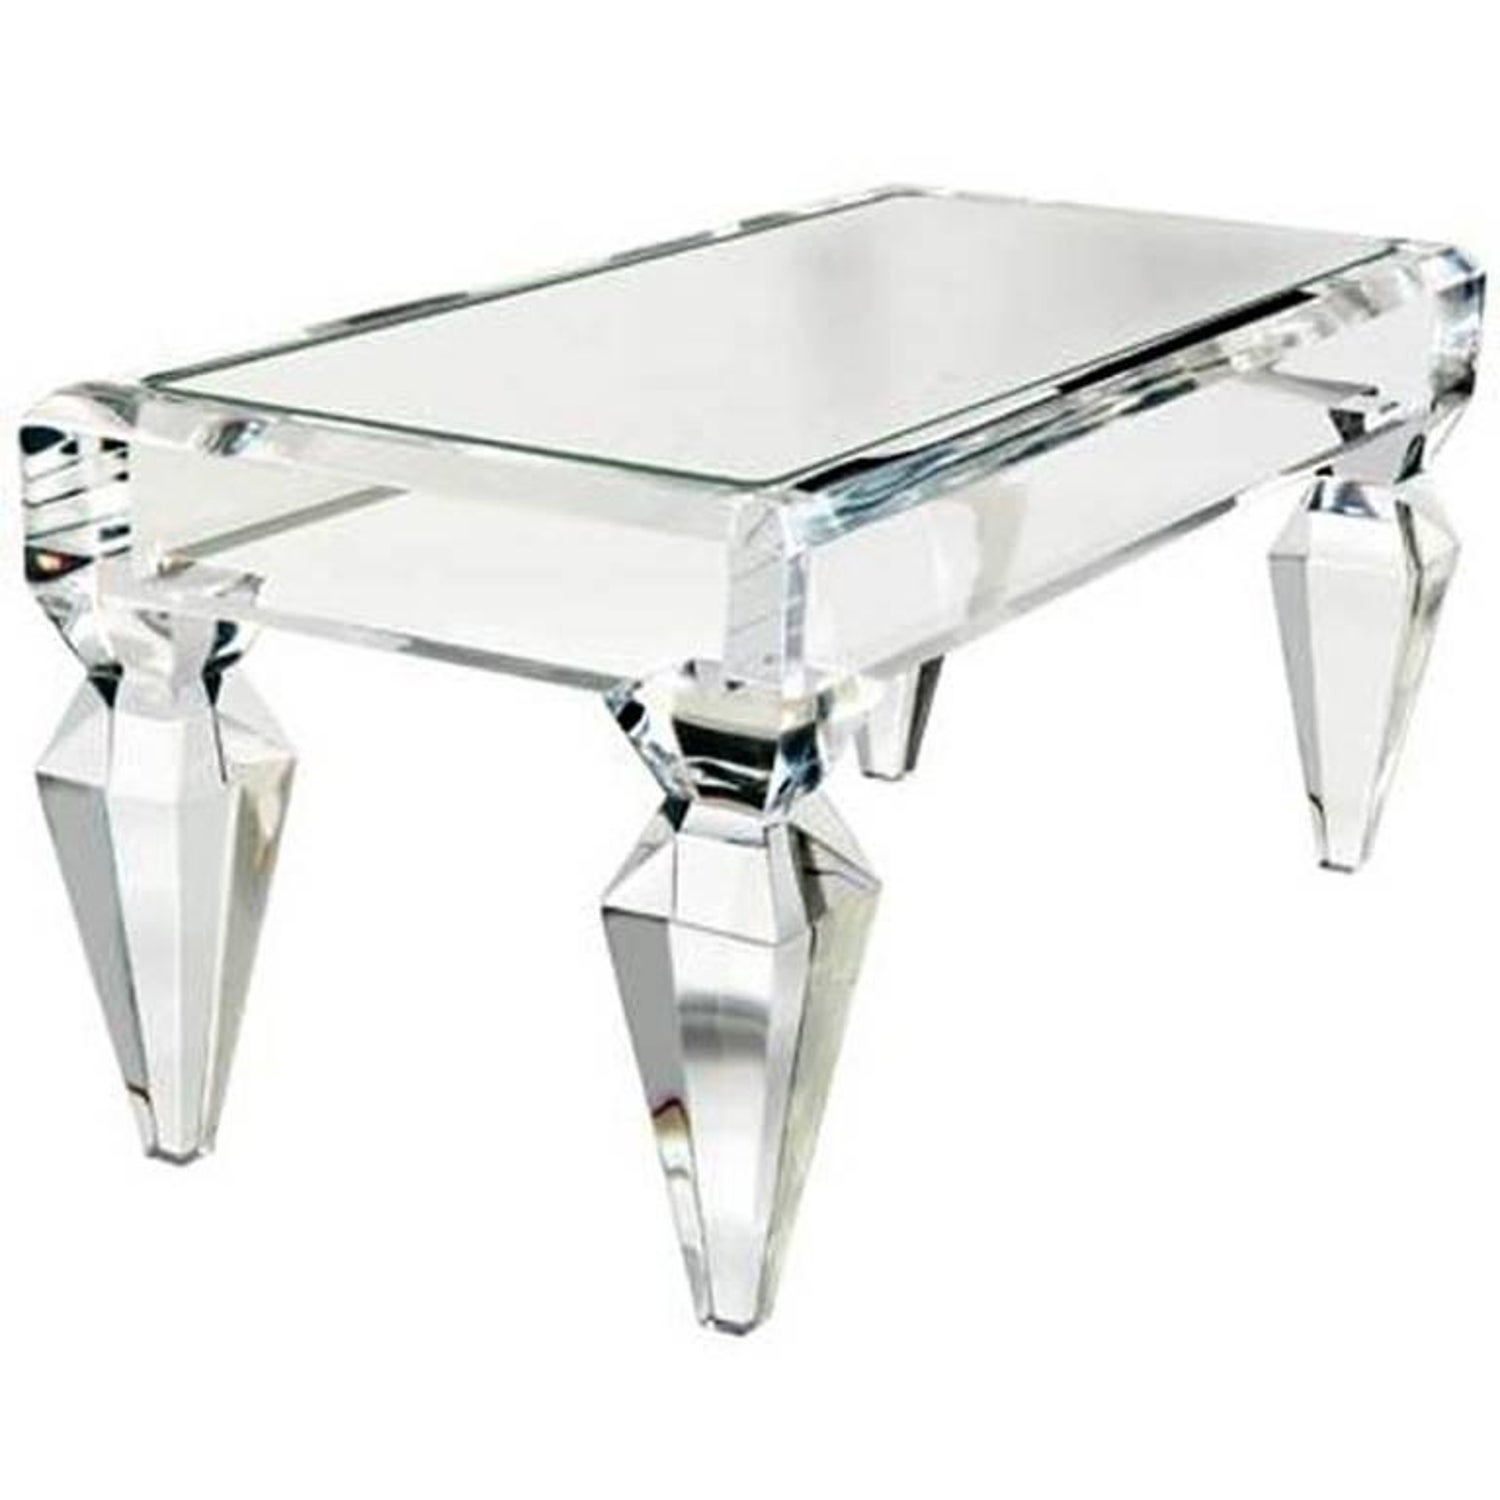 Clair Coffee Table Designed by Craig Vandenbrulle For Sale at 1stdibs